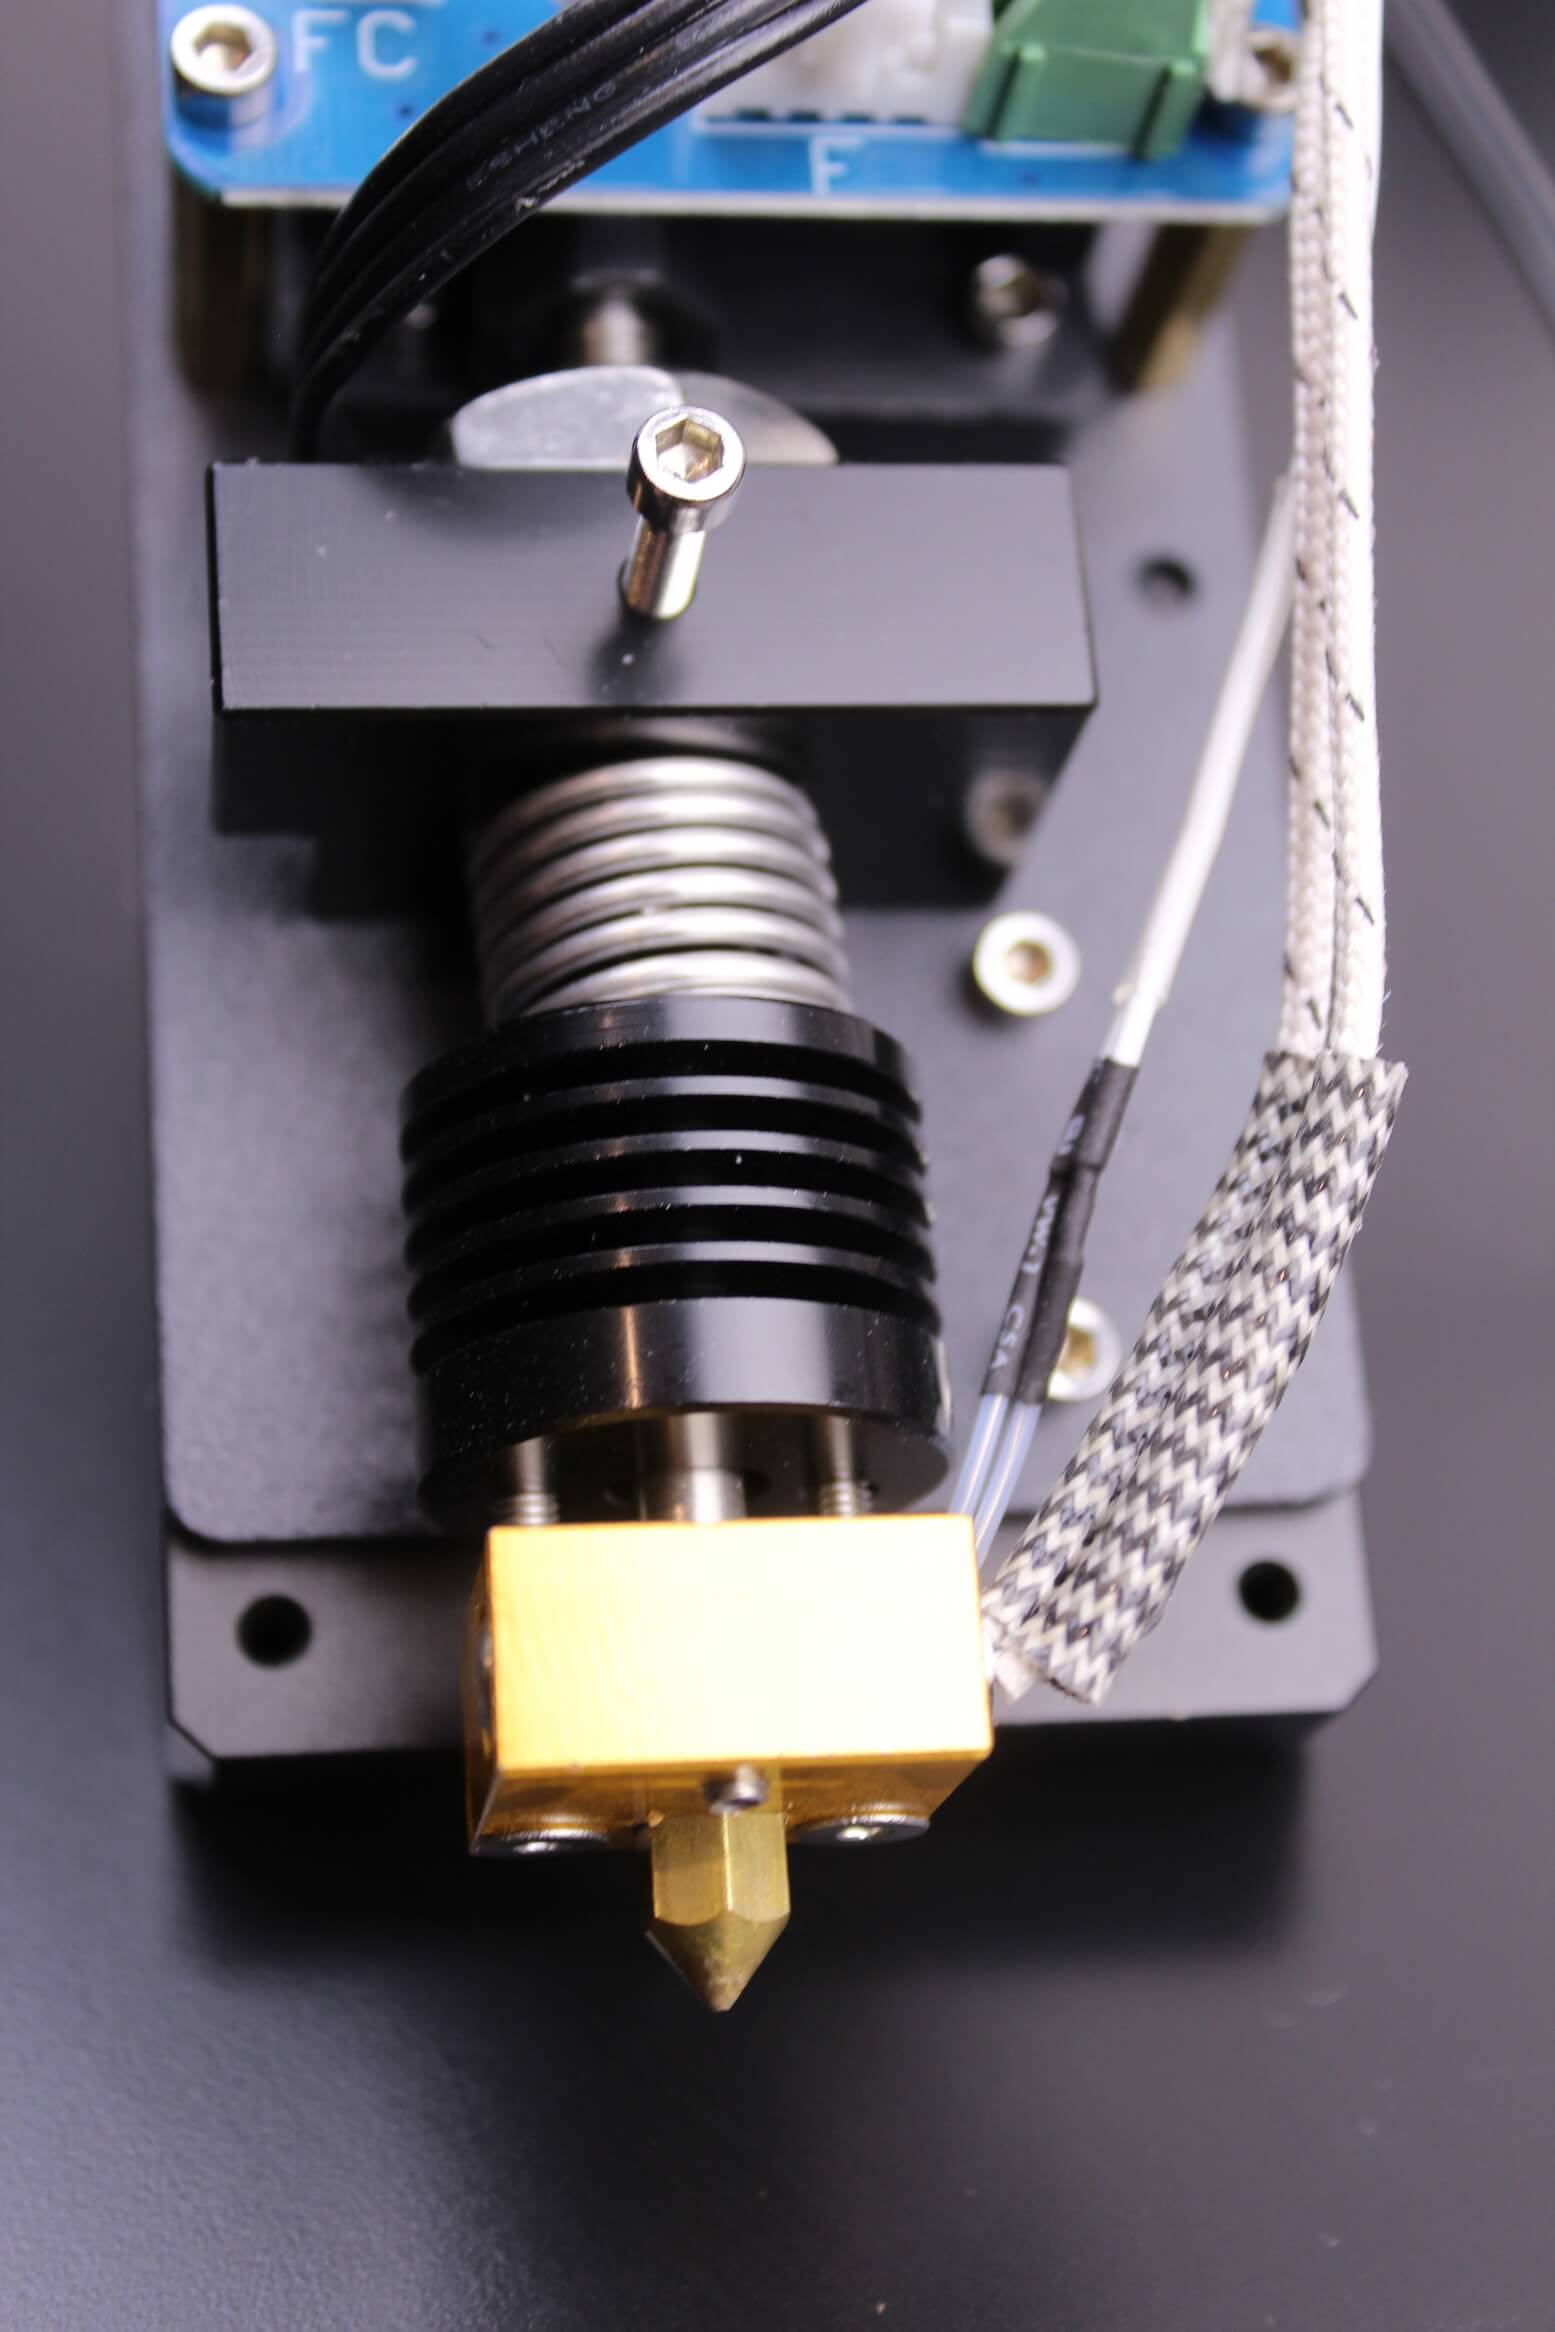 Tenlog-TL-D3-Pro-Second-Extruder-and-hotend-asembly-1